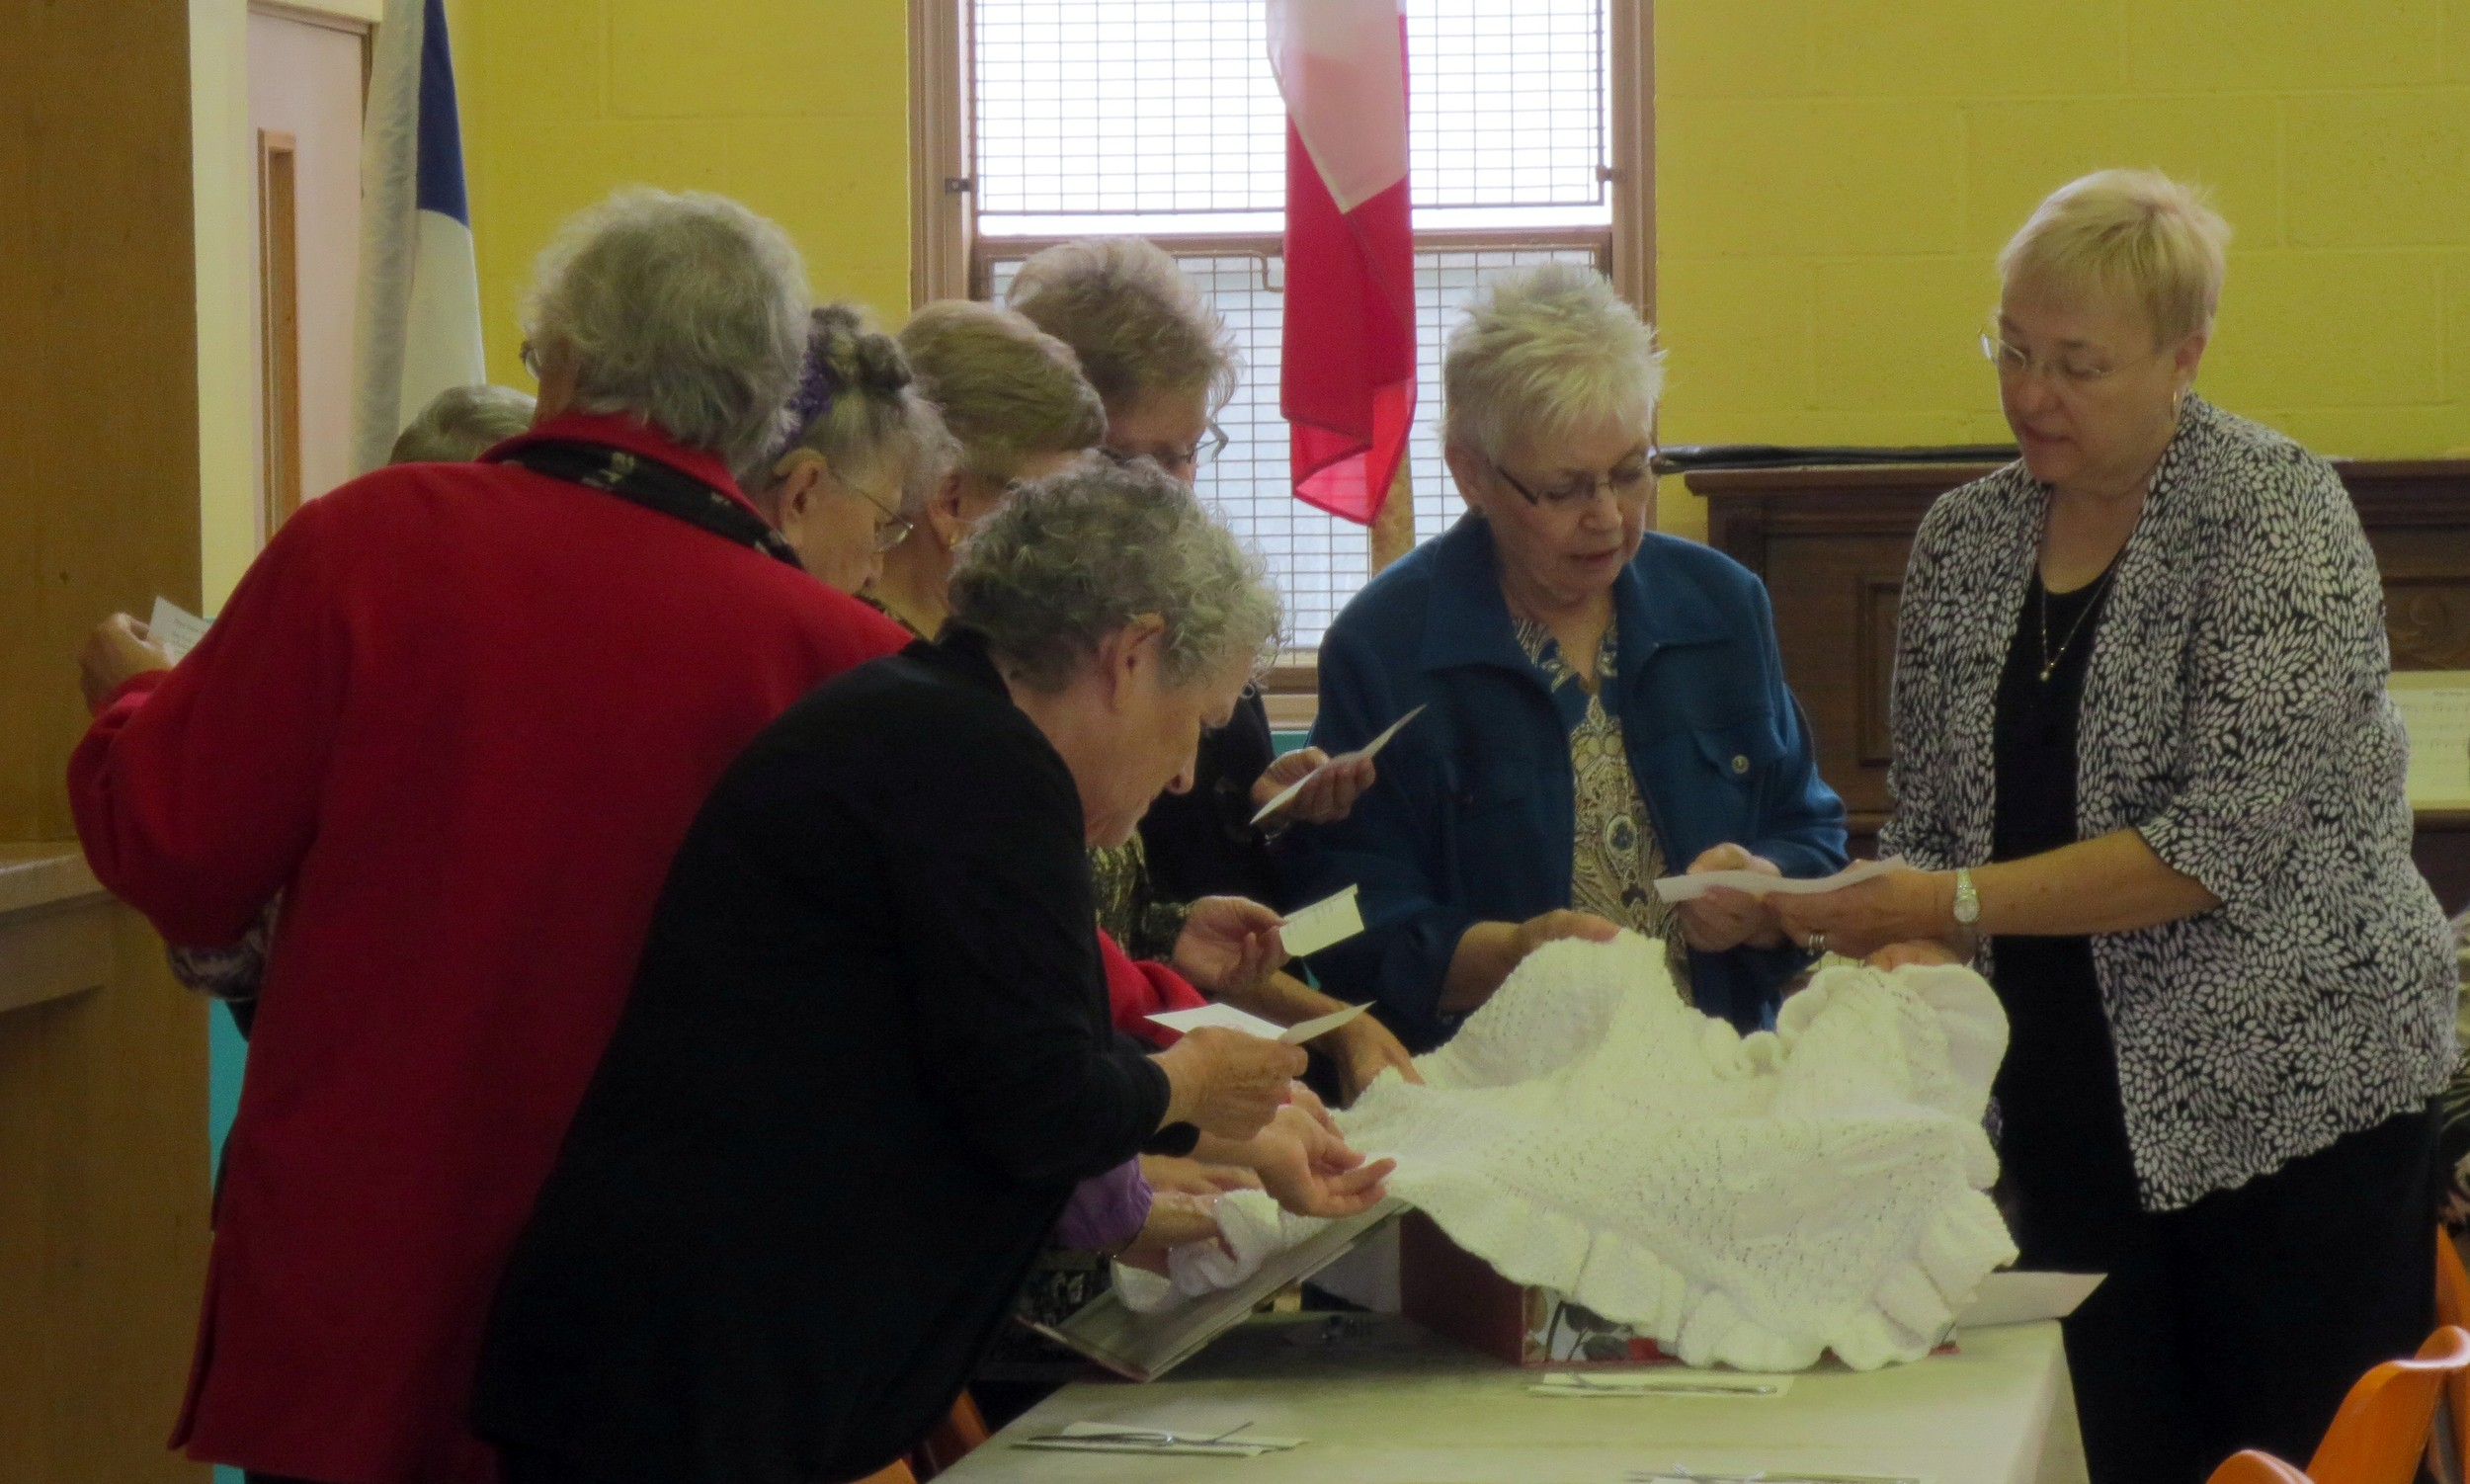 Ladies from the Prayer Shawl Ministry blessing the shawl that was made for Pastor Heidi.